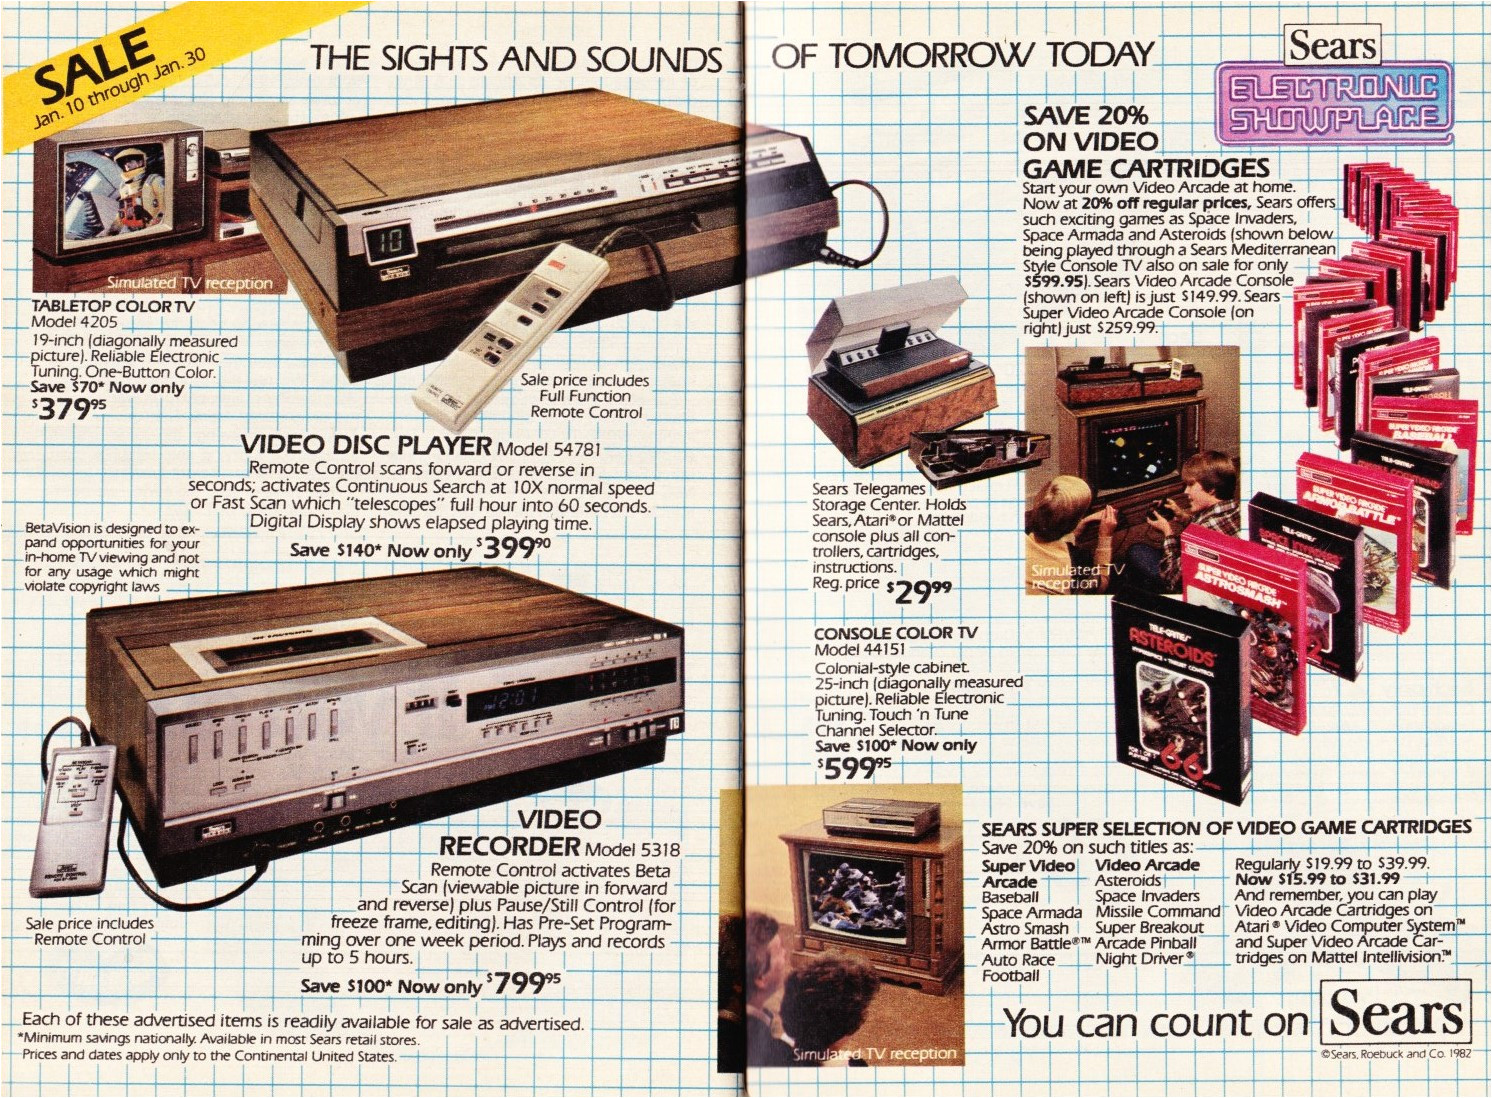 a remote control that is wired to the video recorder is a pretty sweet deal if you sit within four feet of the tv i know the sears video arcade was just